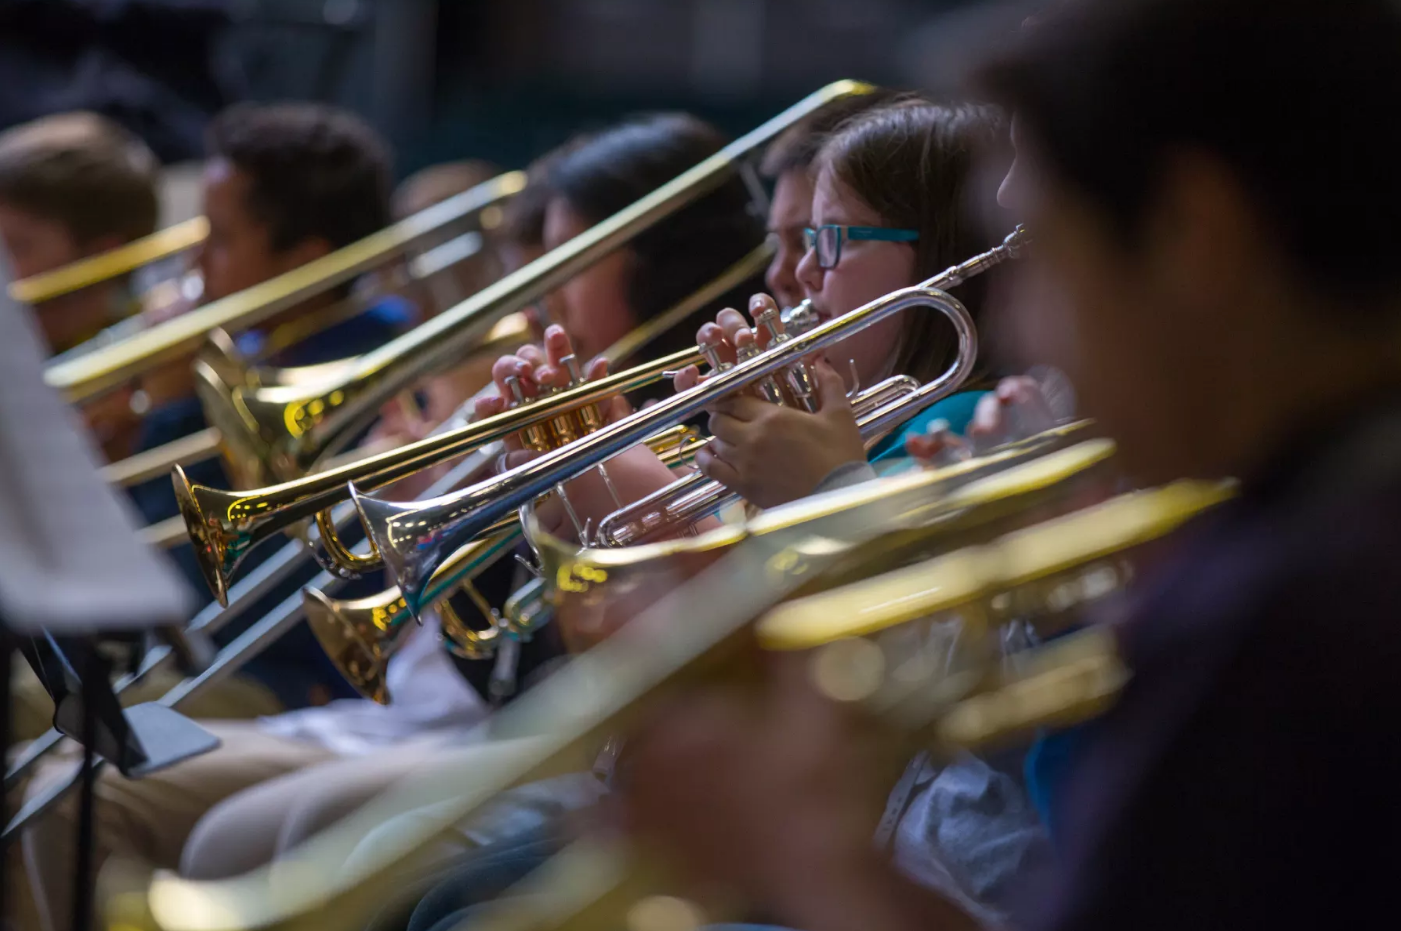 Music students. Phil Roeder/Flickr